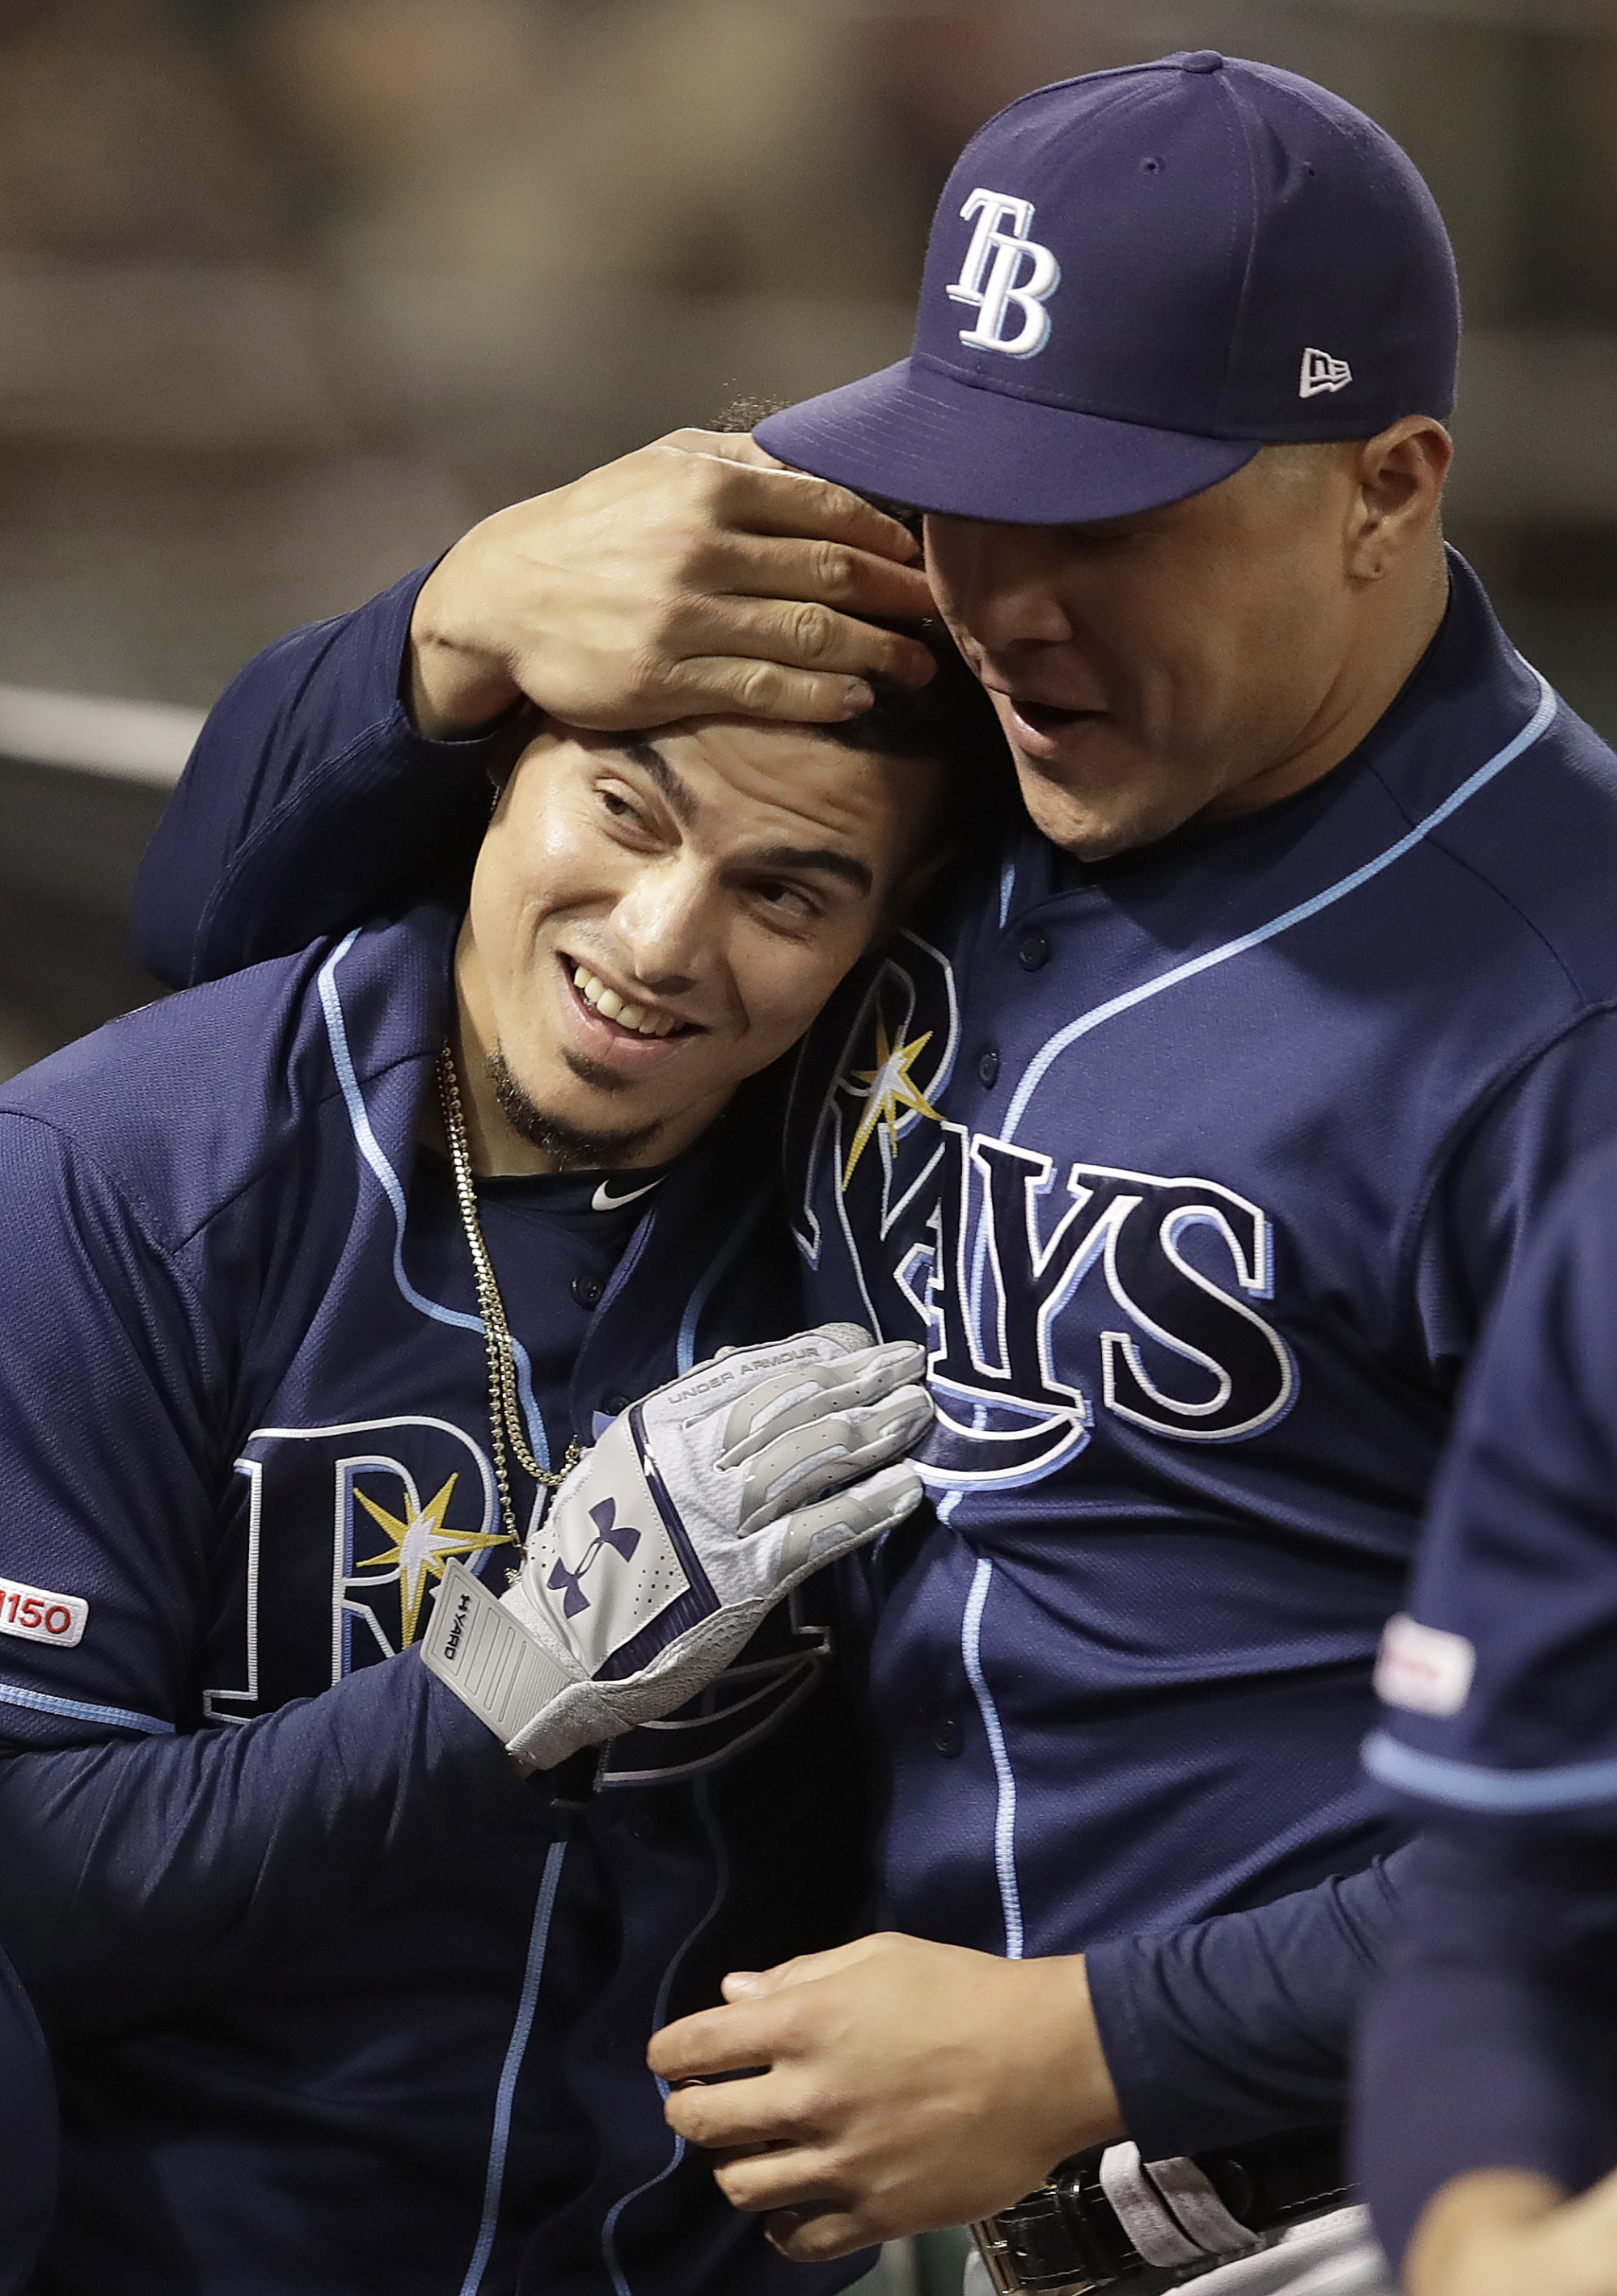 Adames homer helps Rays end road skid, beat A's 5-3 | WTOP